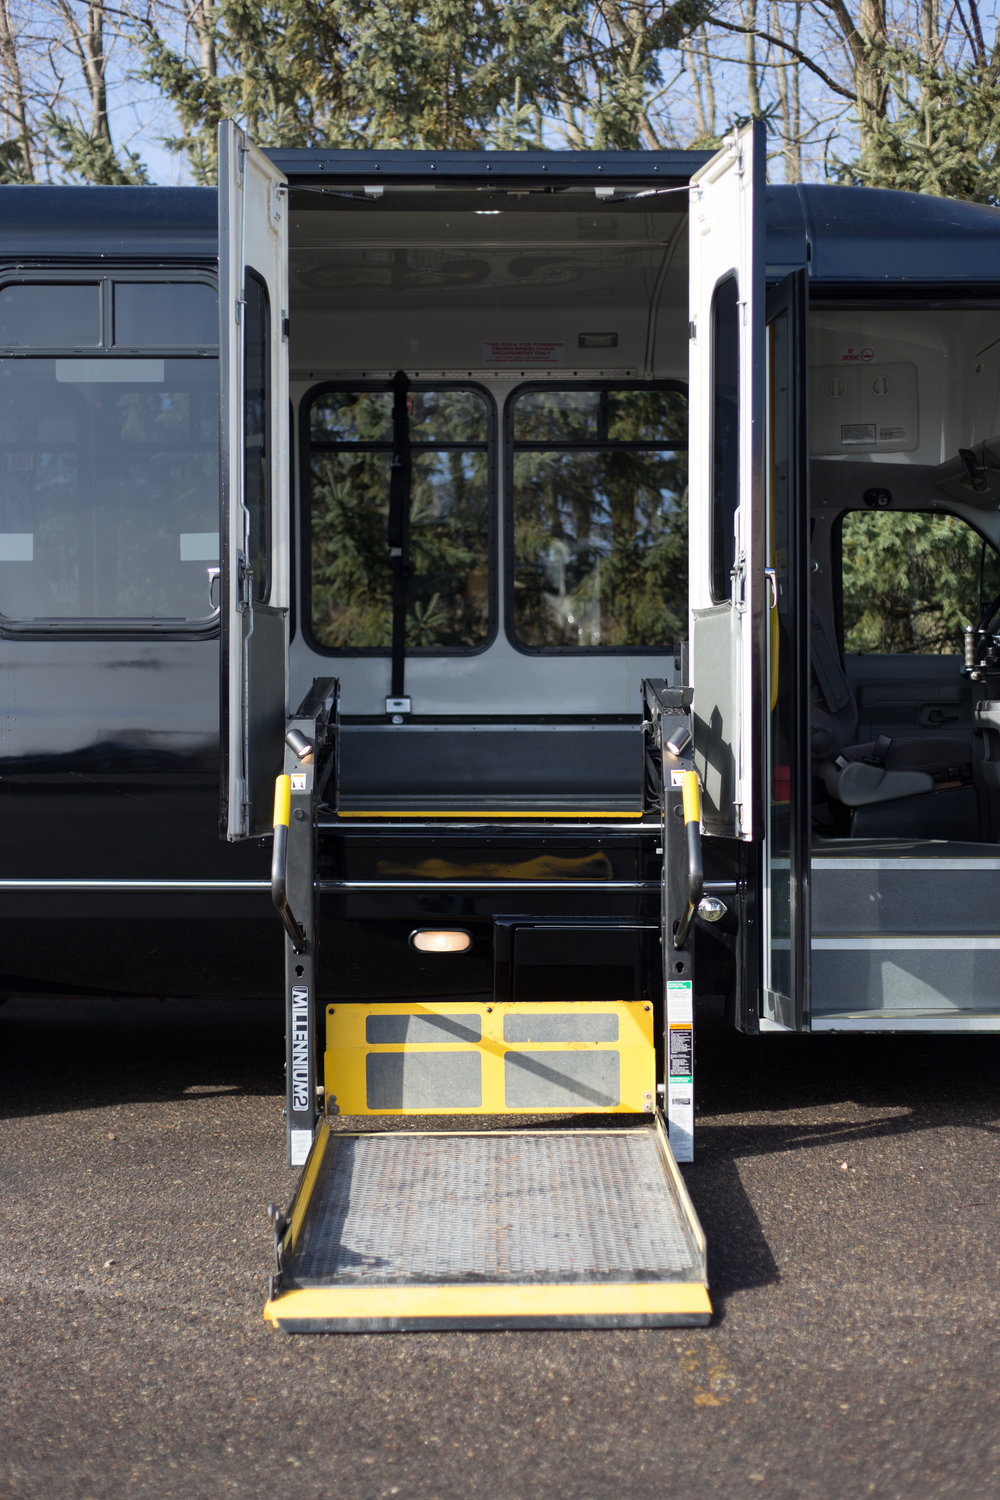 ADA Shuttle Transportation